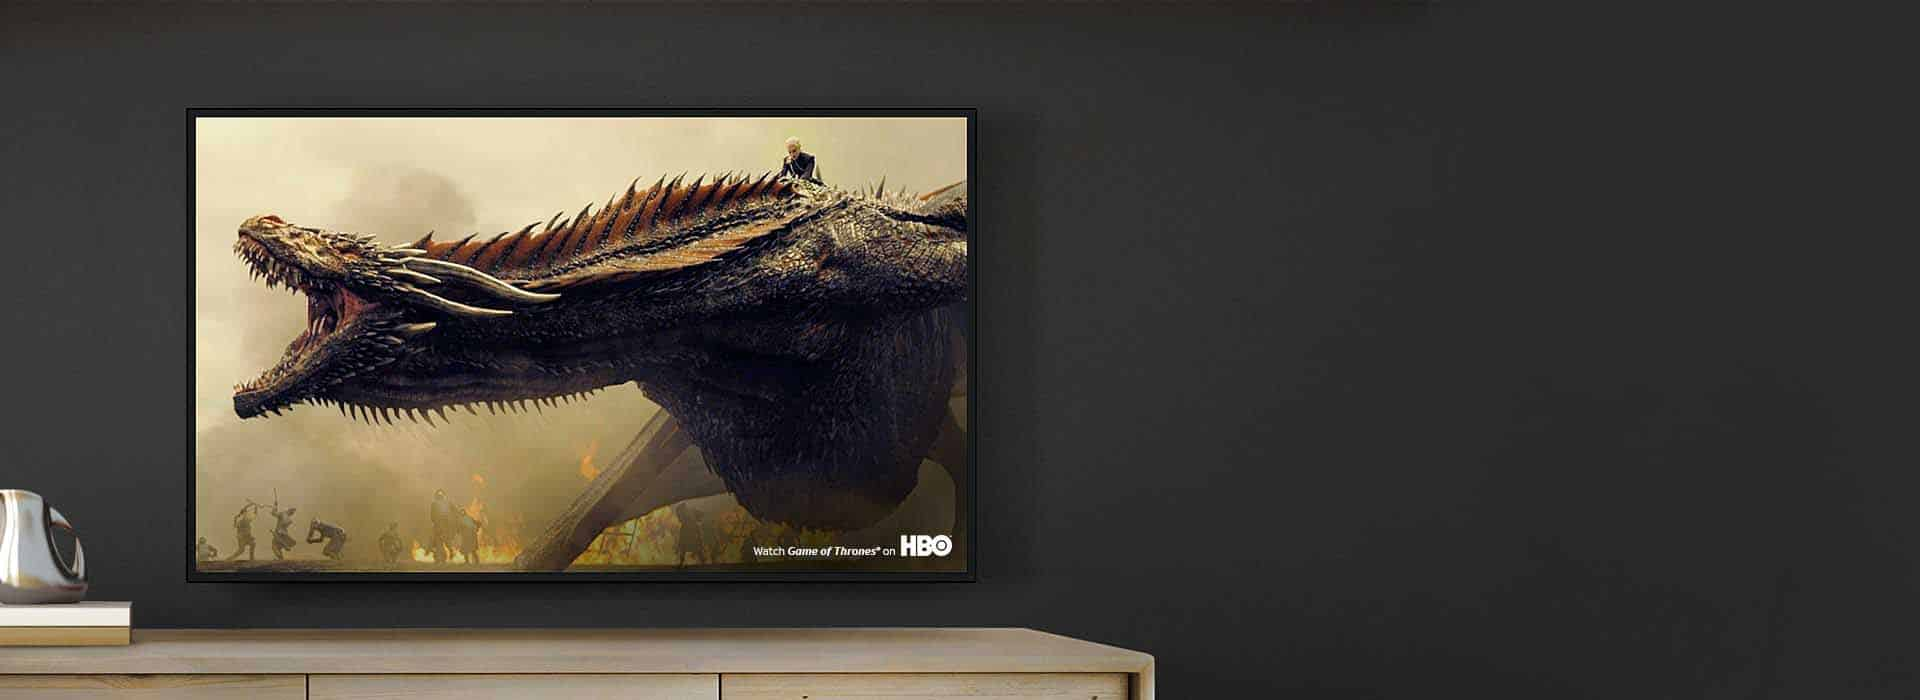 What Is HDR For TVs And Is It Worth It?